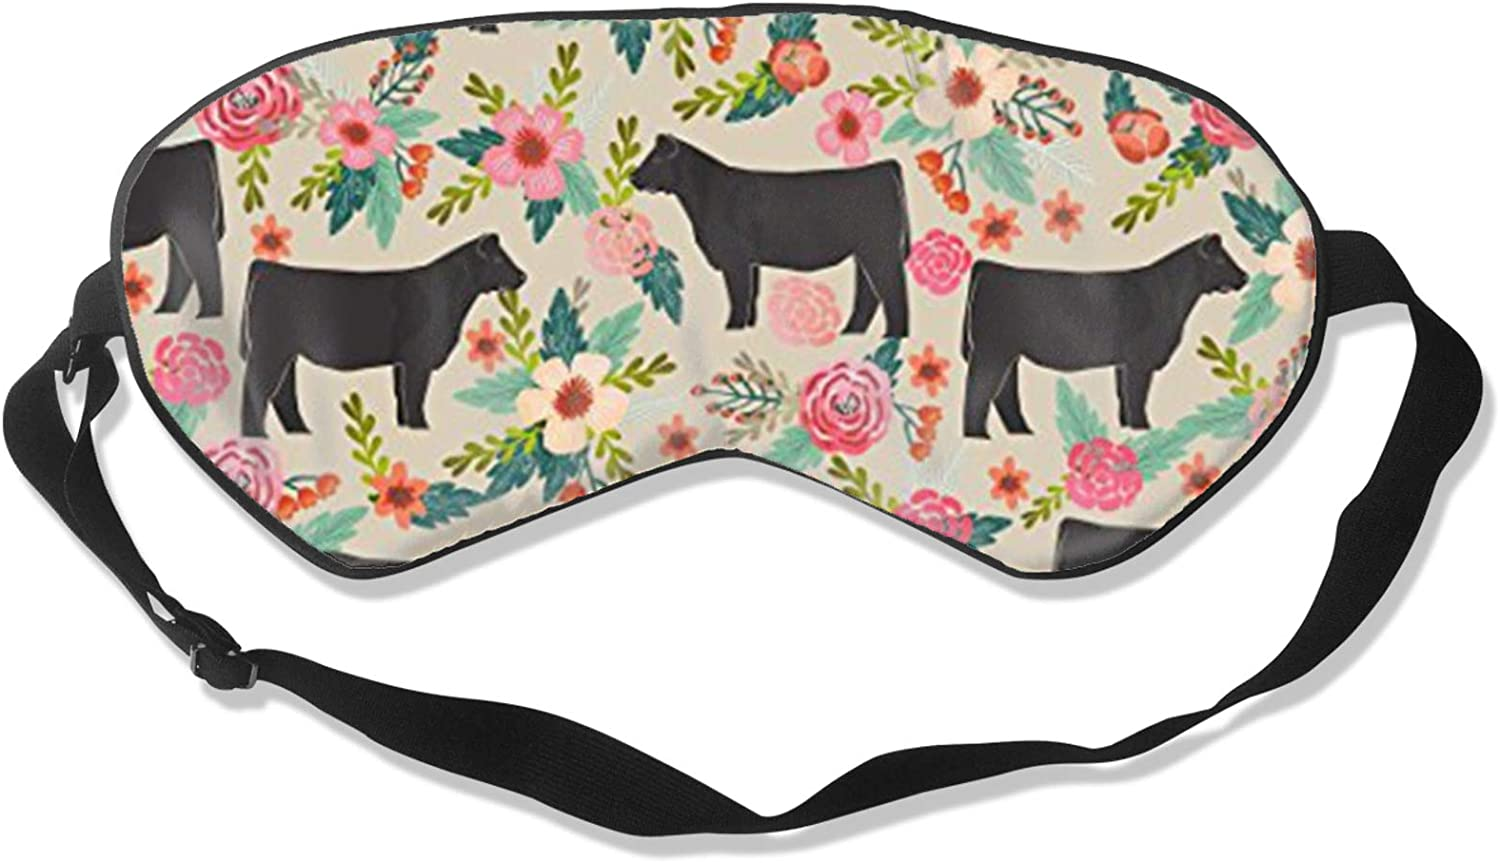 Eye Mask Cows Farm Barn Florals Eyeshade for Sleep N Travel Ranking TOP10 We OFFer at cheap prices